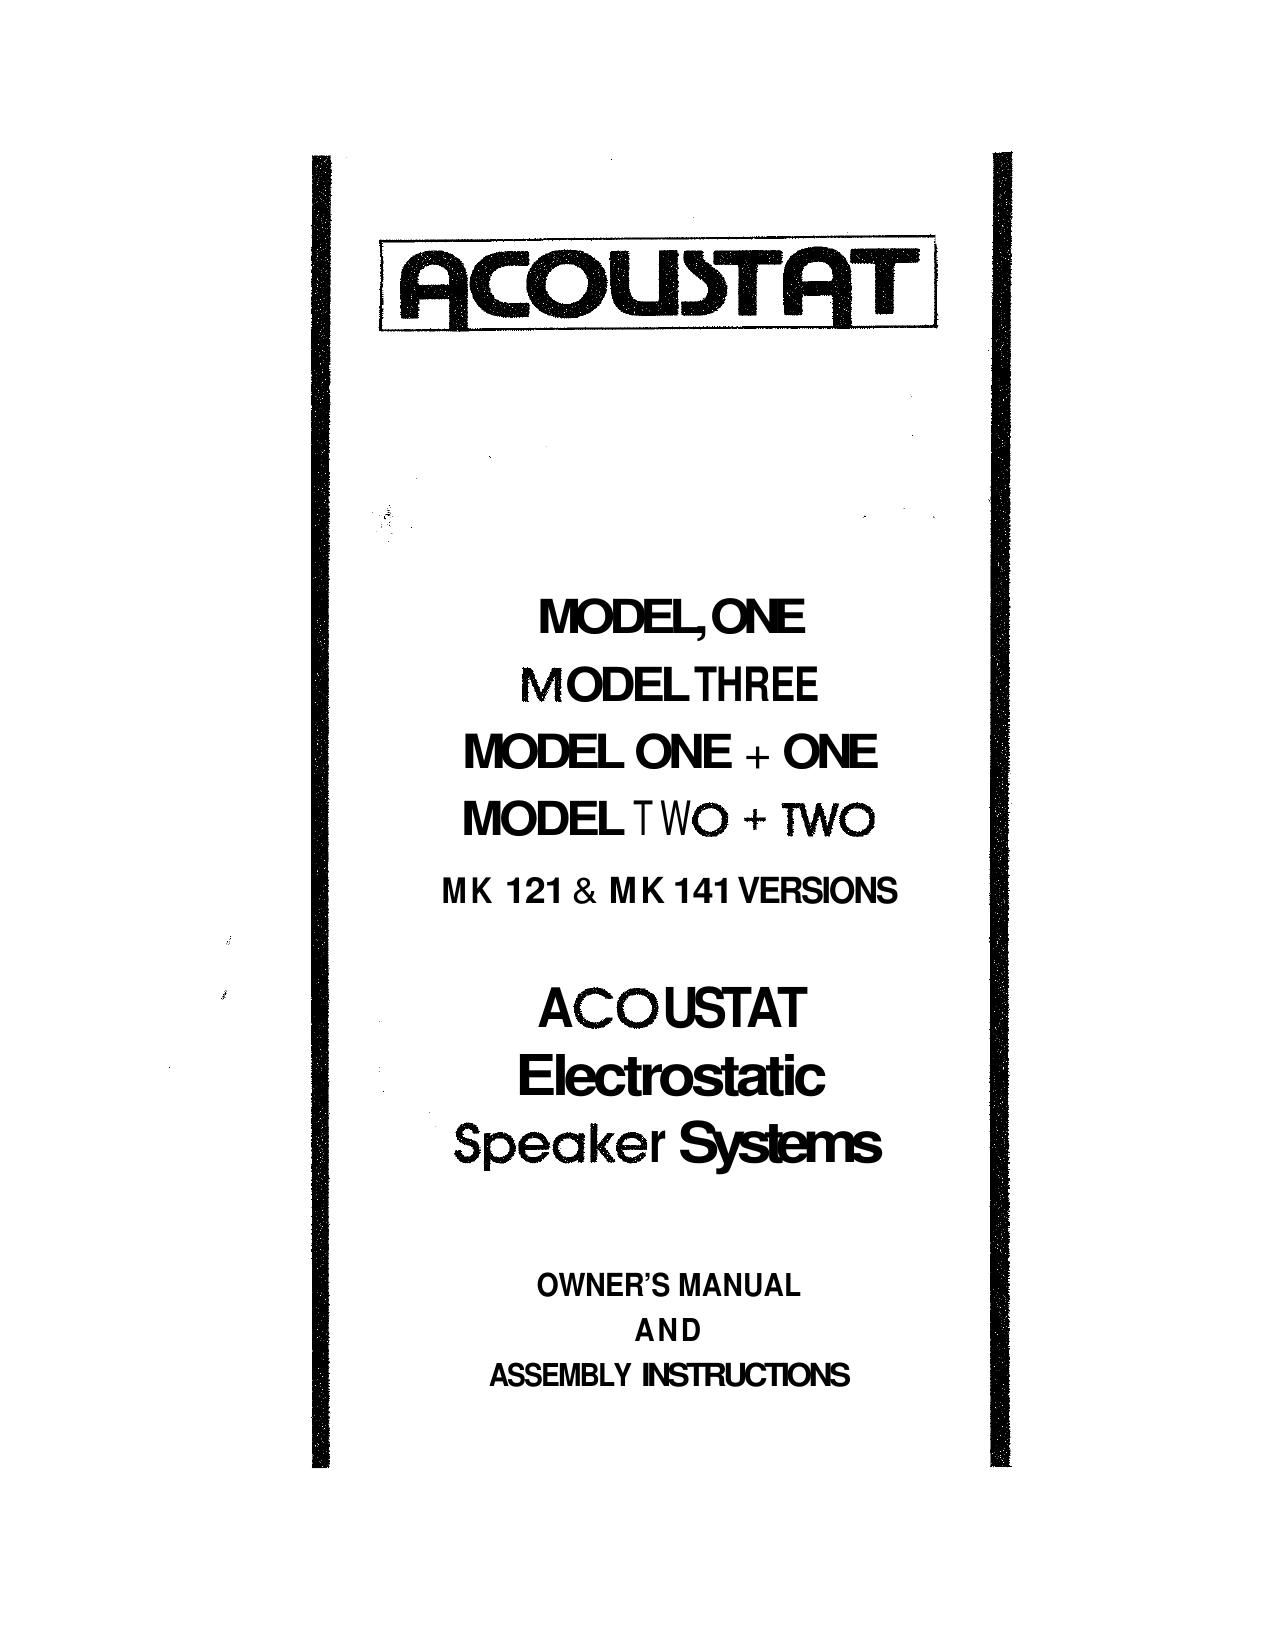 Acoustat Model 3 Owners Manual